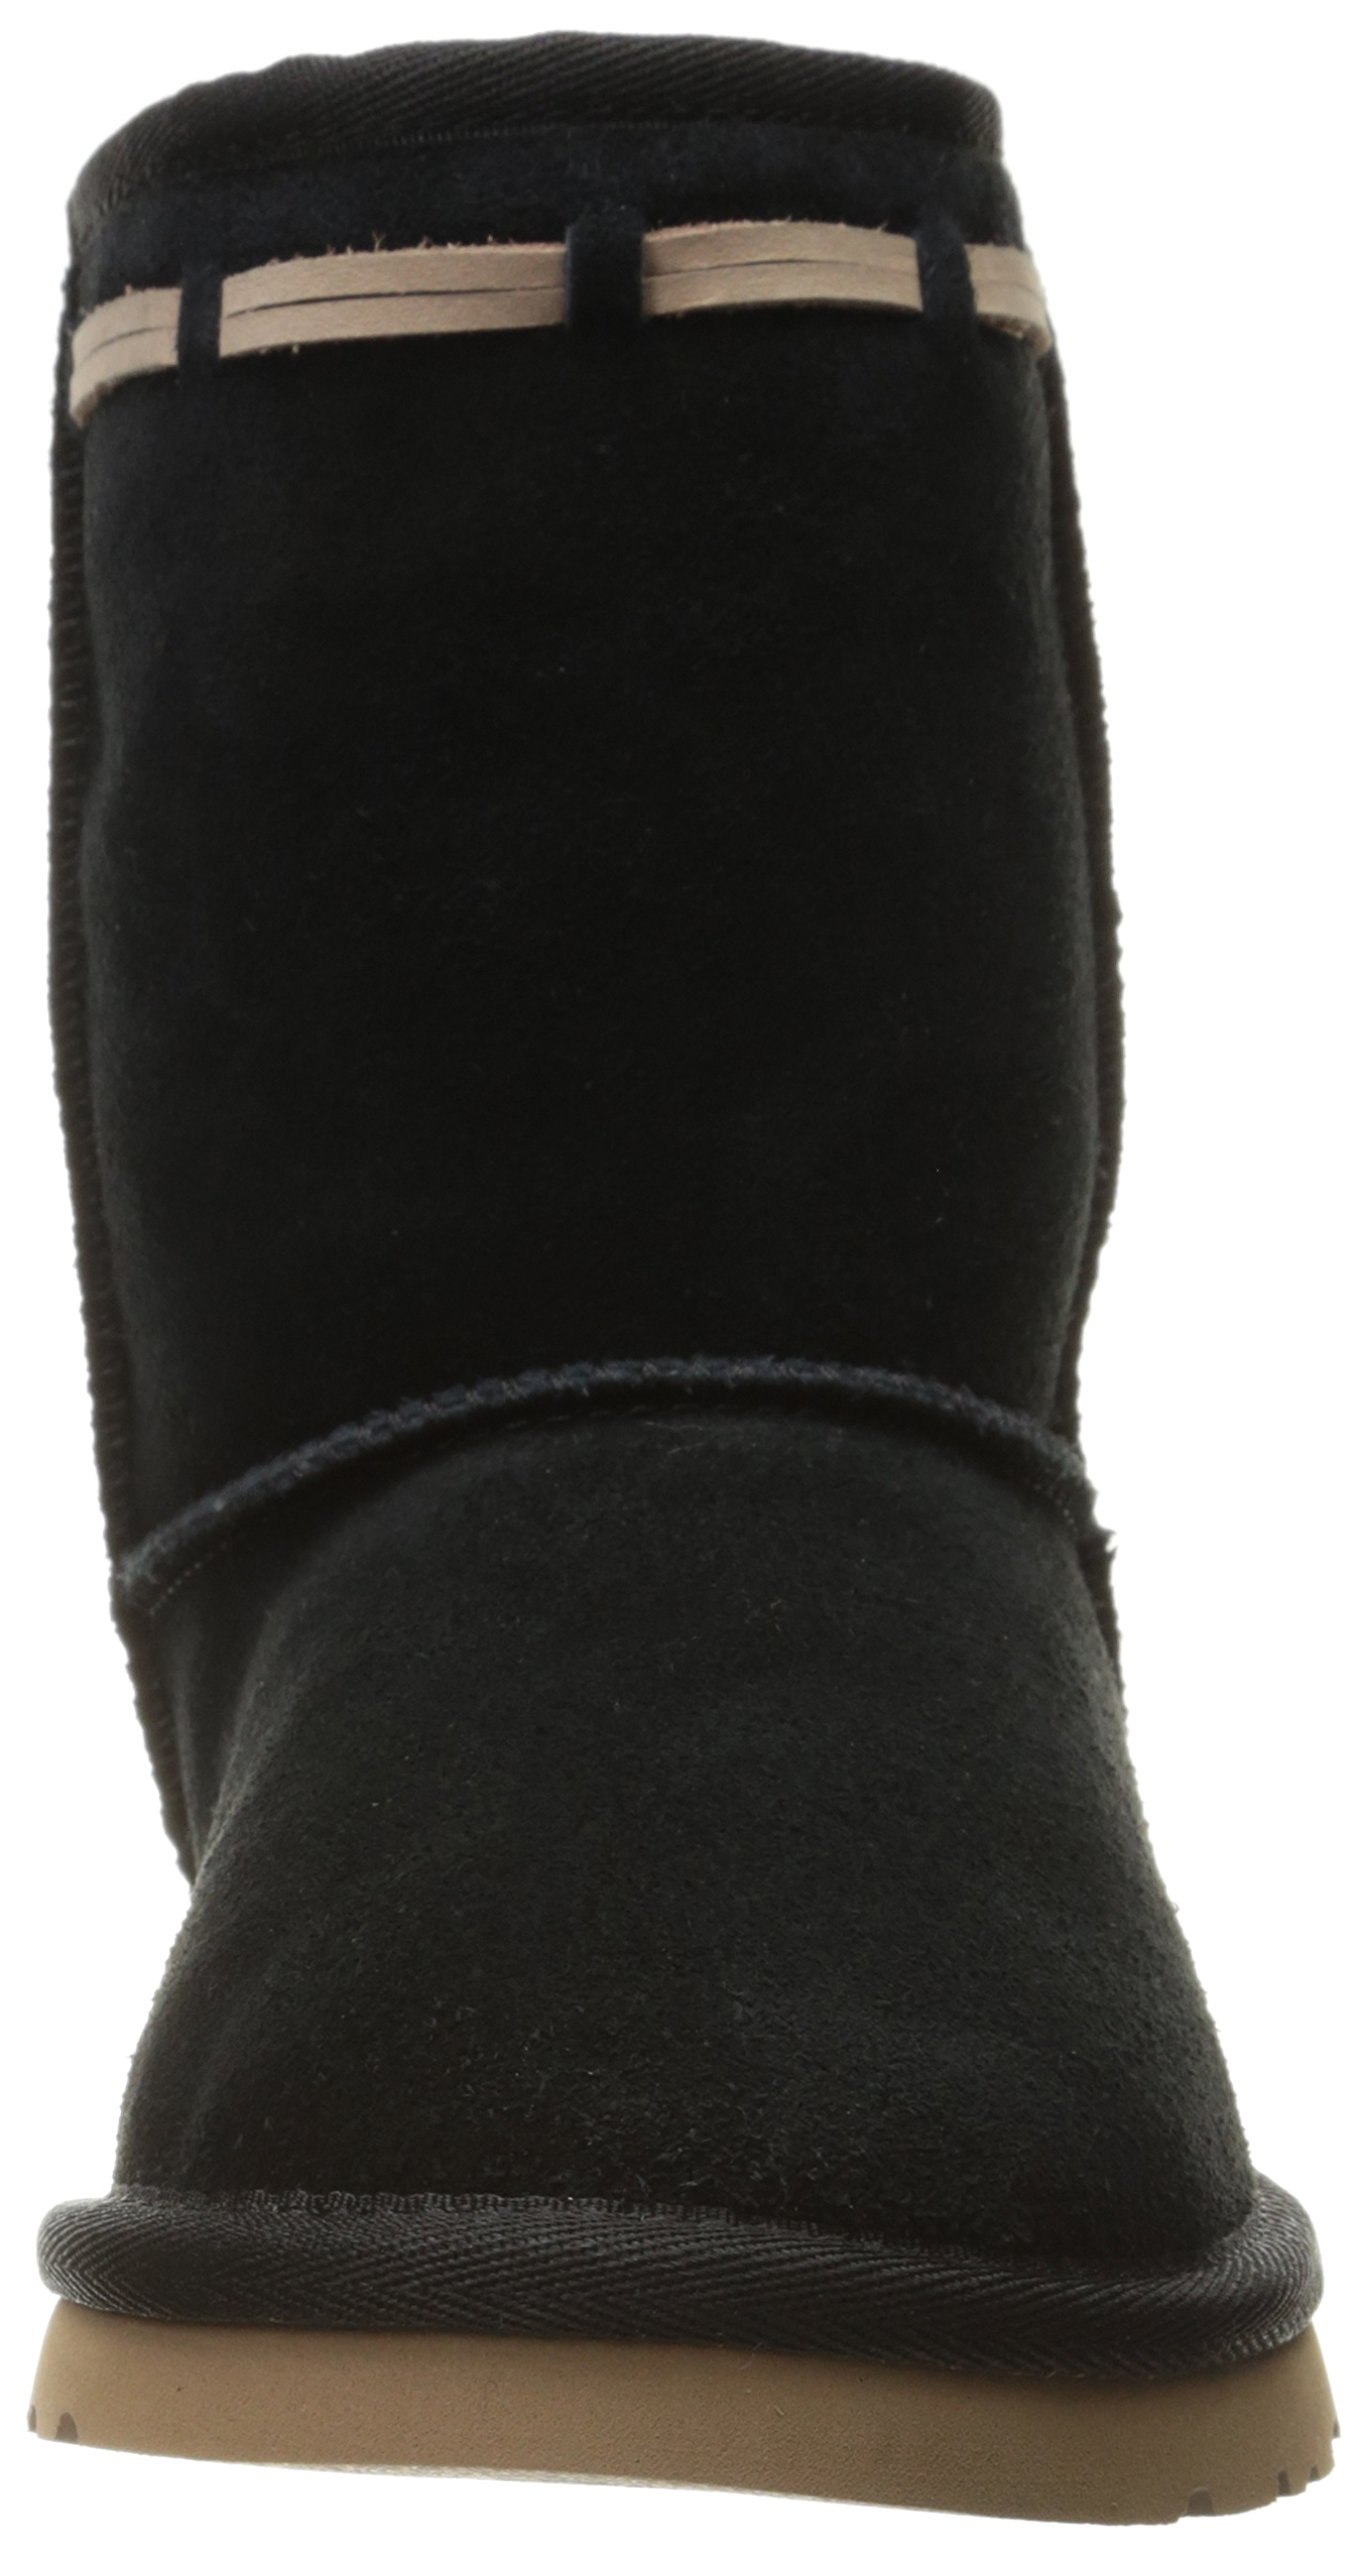 UGG Kids' K Classic Short Carranza Pull-on Boot, Black, 2 M US Little Kid by UGG (Image #4)